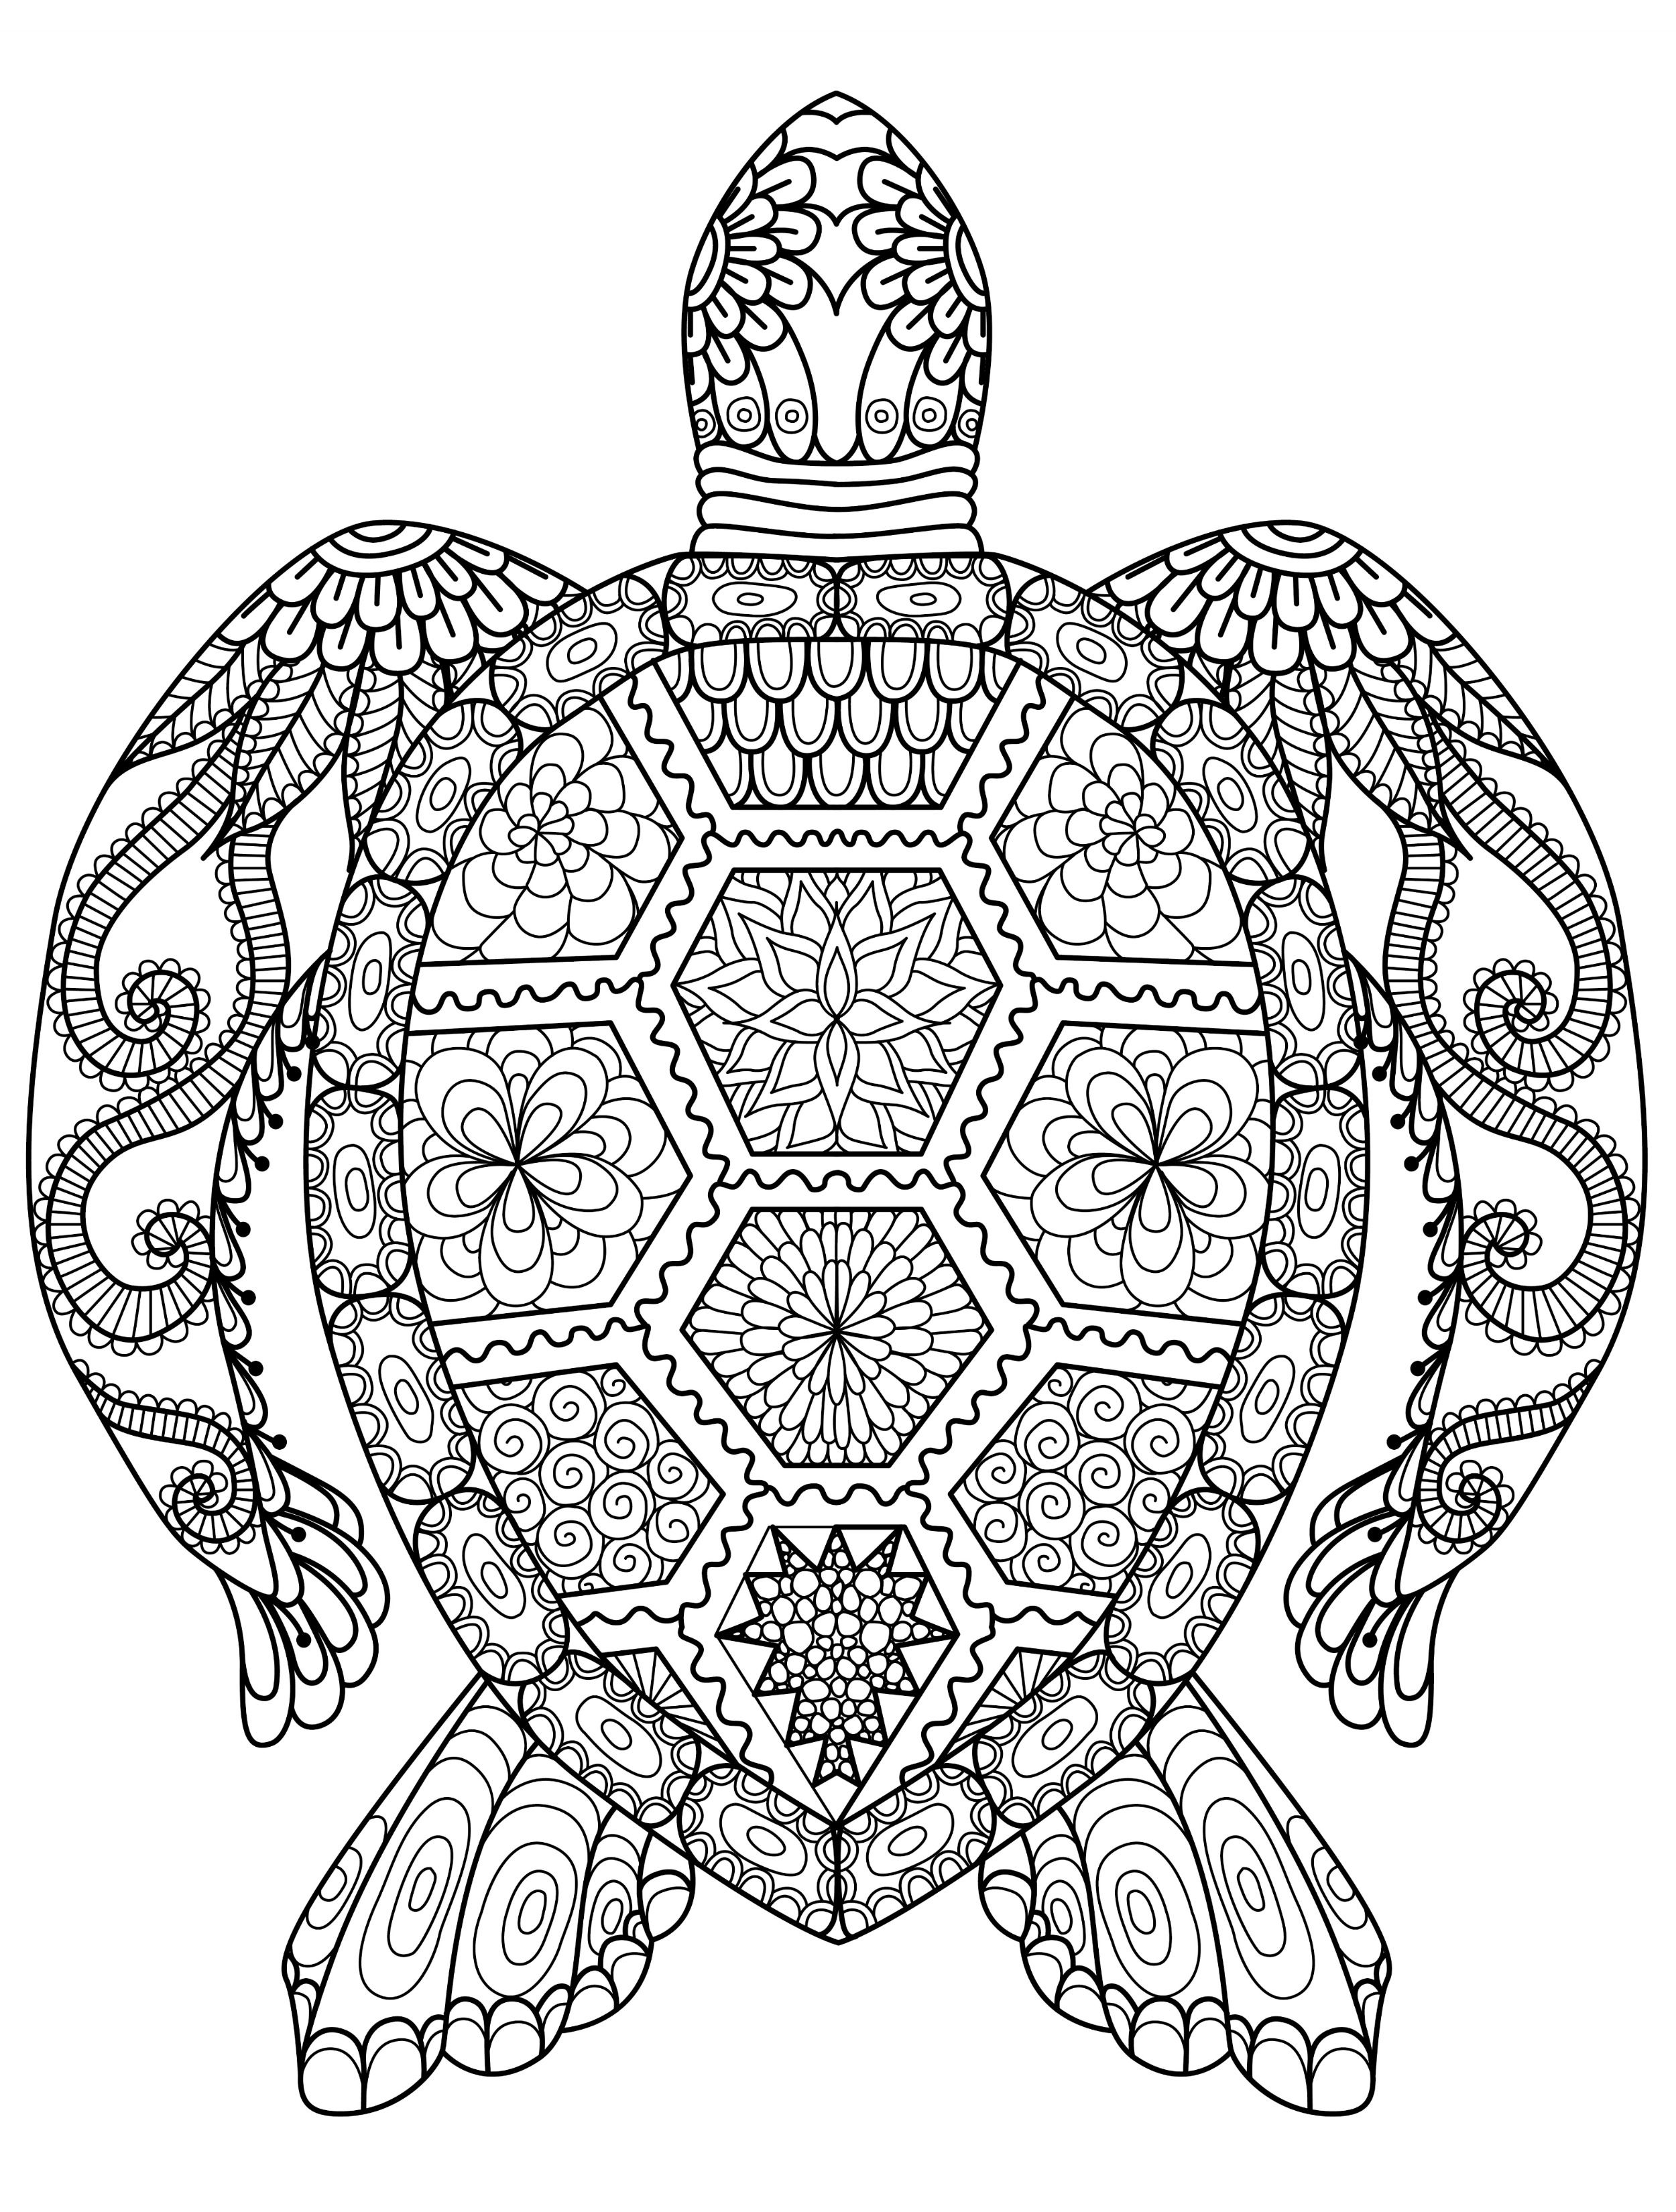 Simple Sea Turtle Coloring Pages Kids Coloring Pages 6629 Turtle